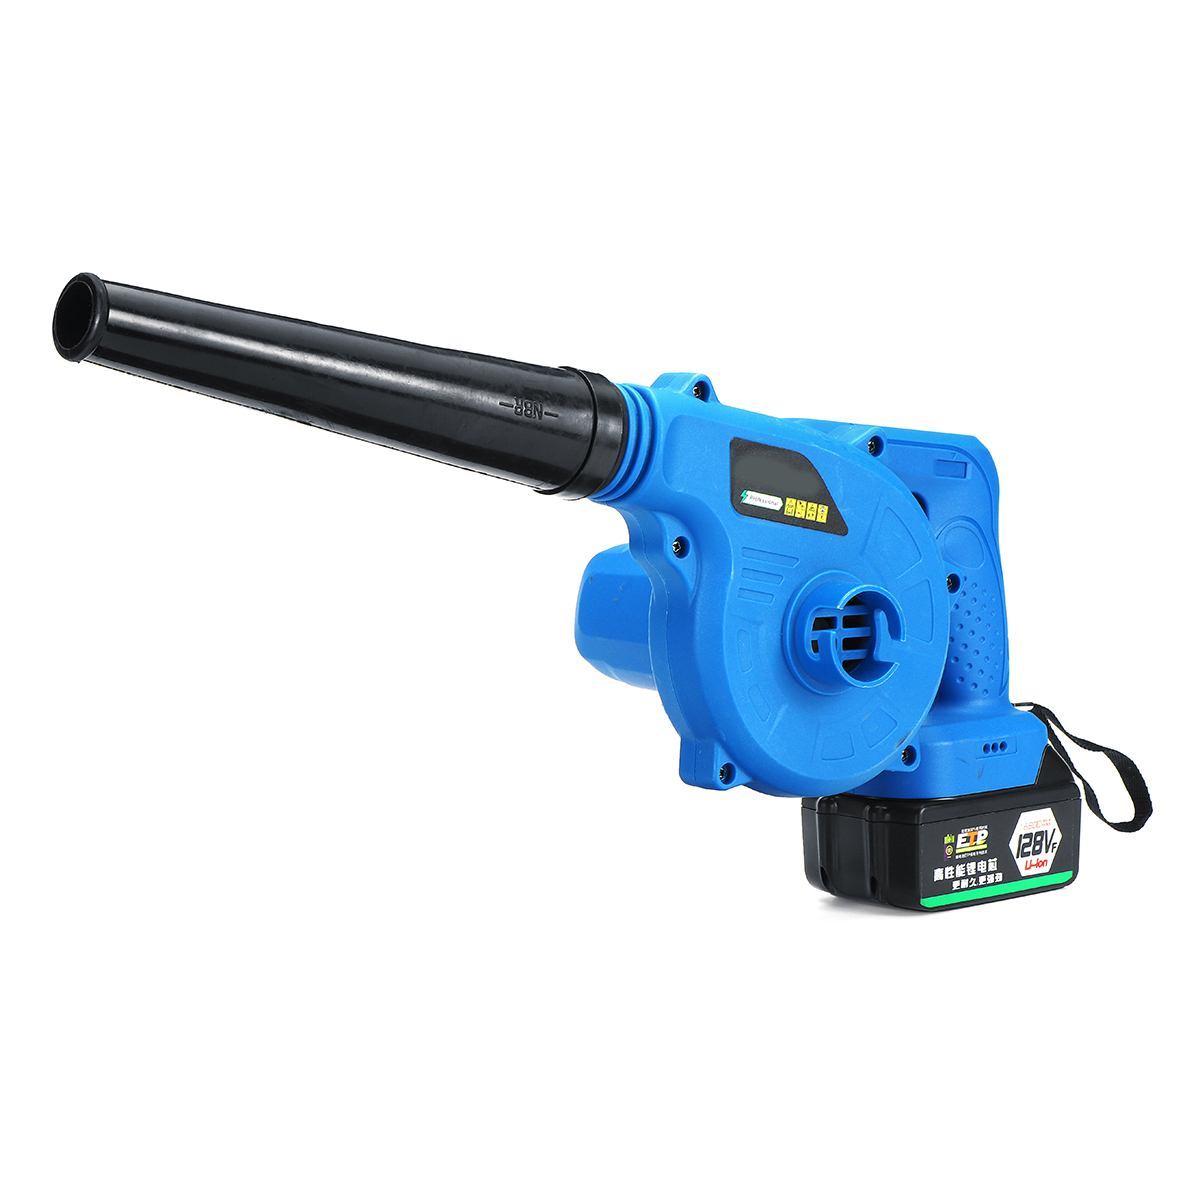 220V Electric Cordless Air Blower Handheld Blowing Lithium Battery Rechargeable Computer Dust Soot High Power Wireless Blower